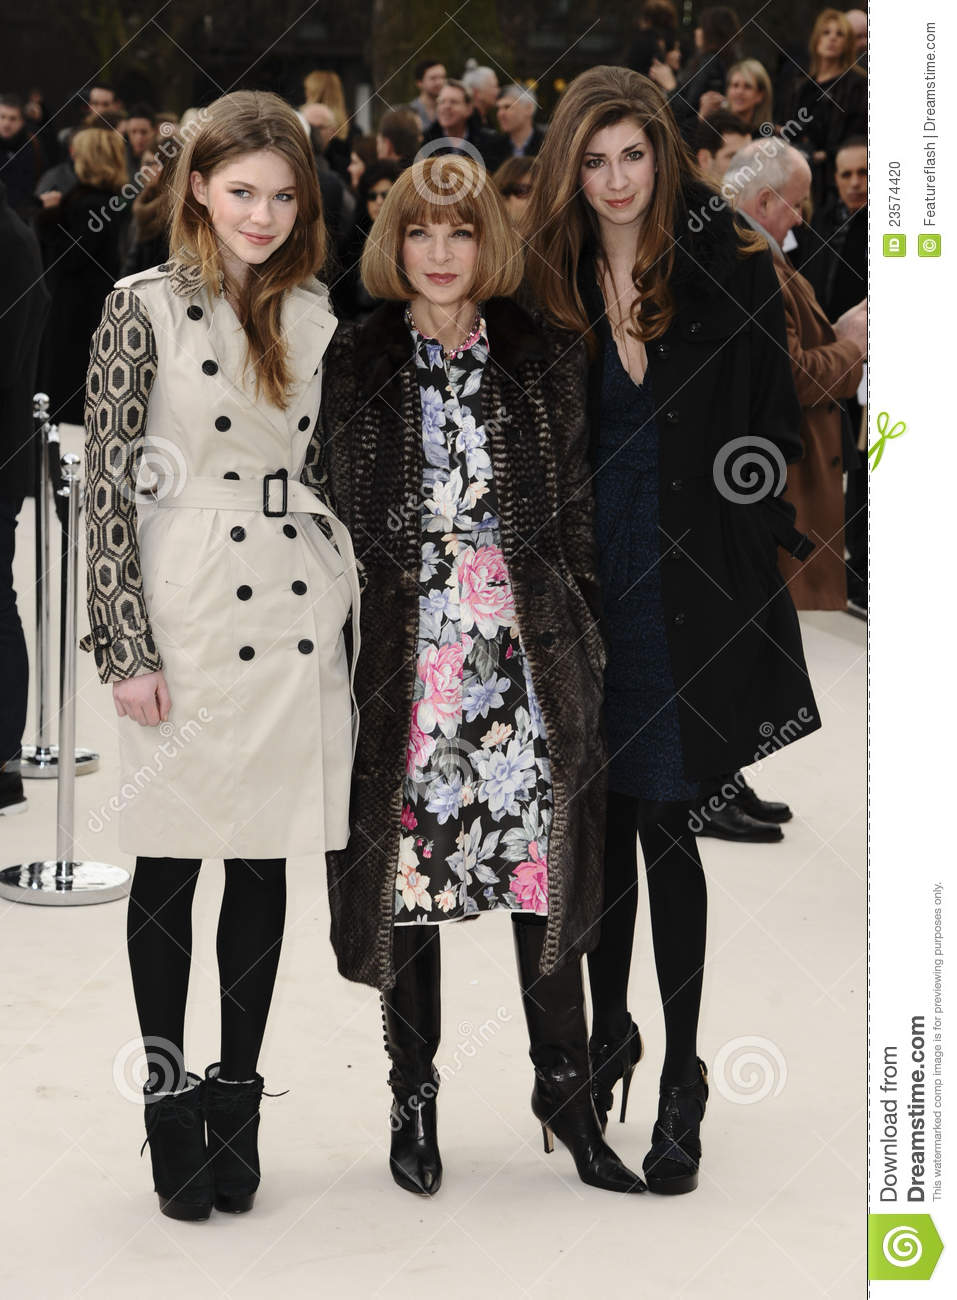 dfd443126a56 Anna Wintour and niece